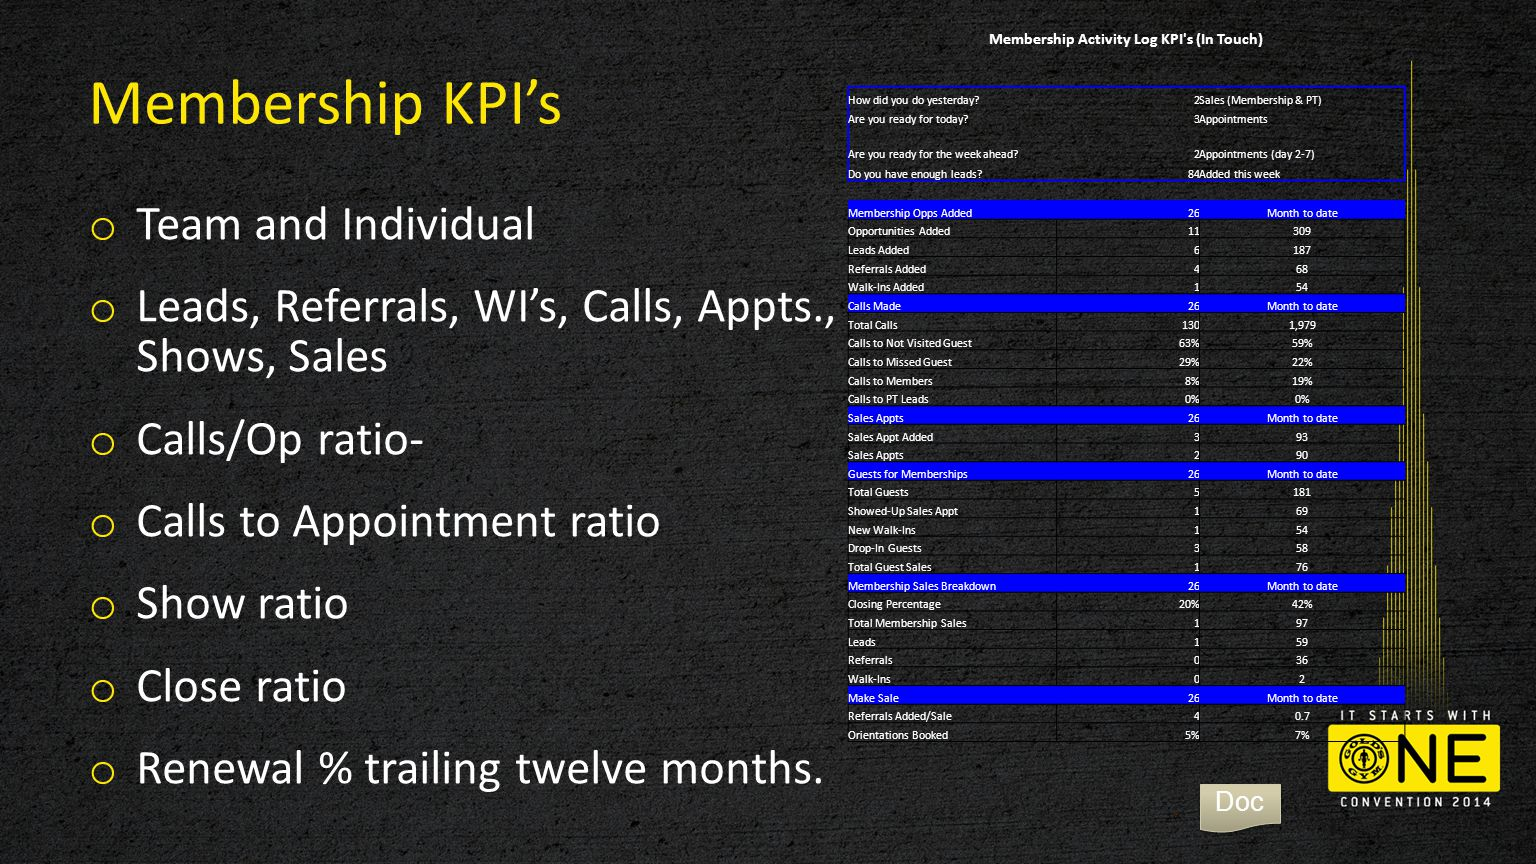 Membership KPI's o Team and Individual o Leads, Referrals, WI's, Calls, Appts., Shows, Sales o Calls/Op ratio- o Calls to Appointment ratio o Show ratio o Close ratio o Renewal % trailing twelve months.